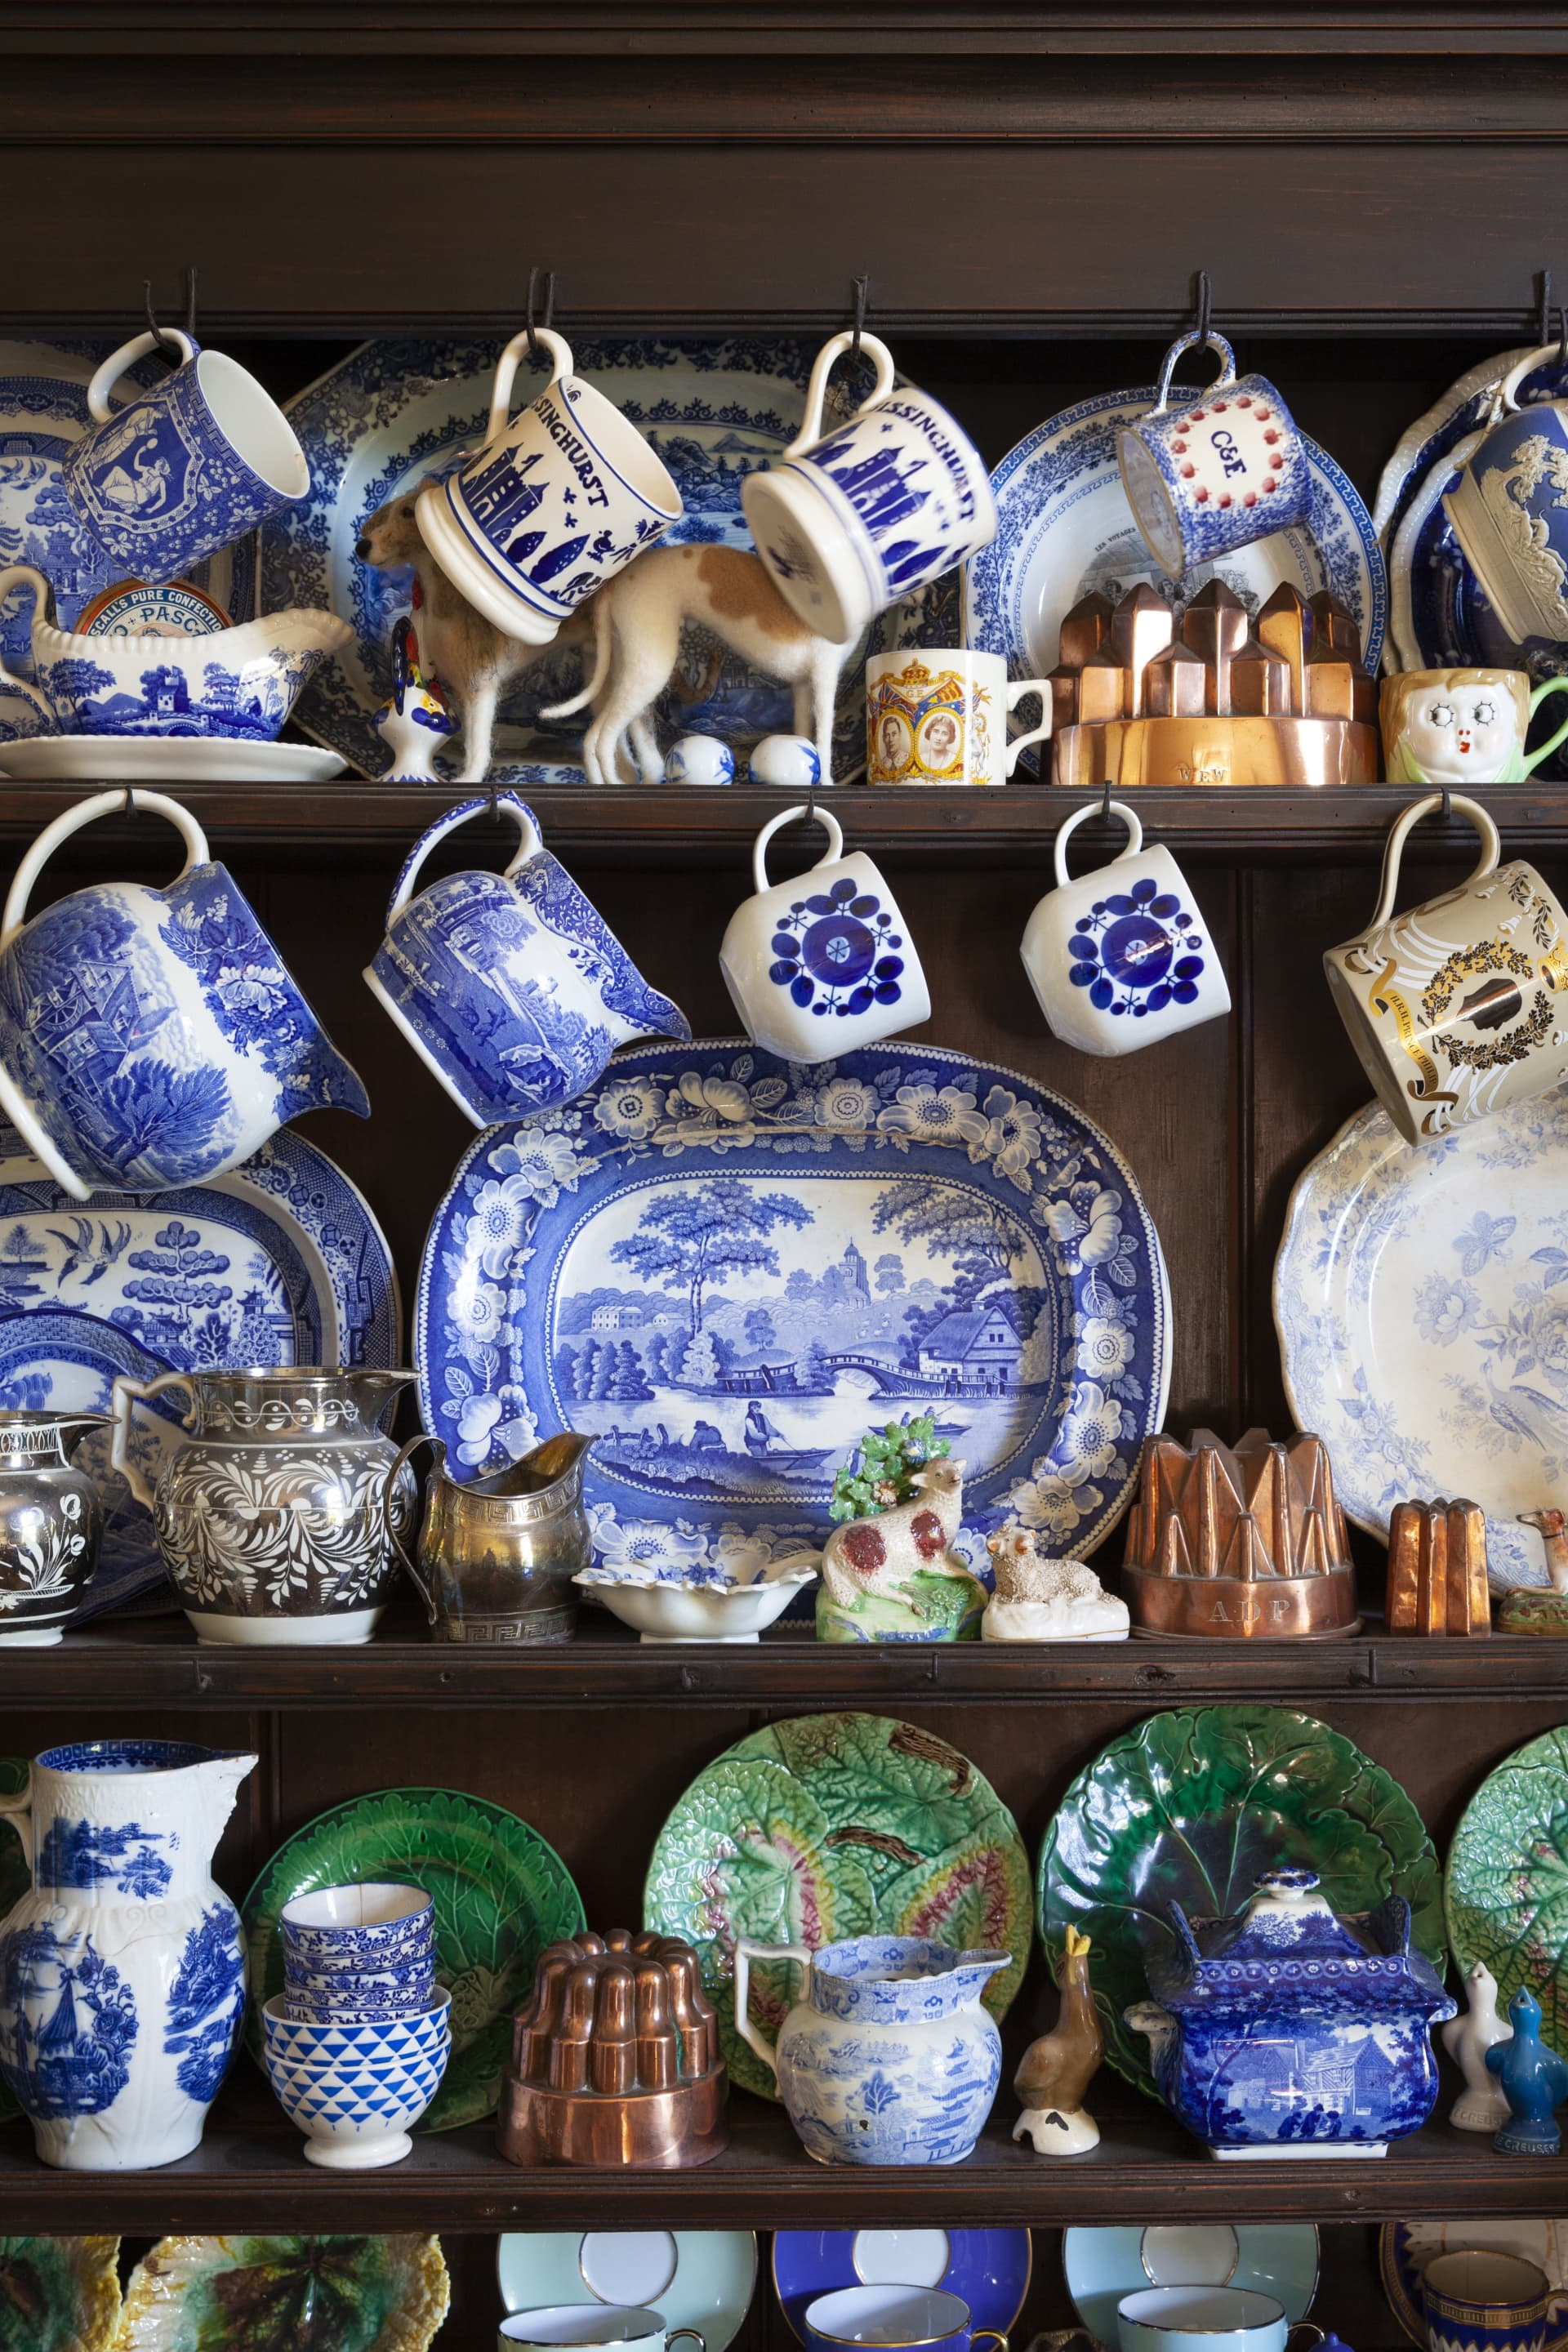 The dresser is filled to capacity, with a collection of early and modern blue and white china and majolica plates.